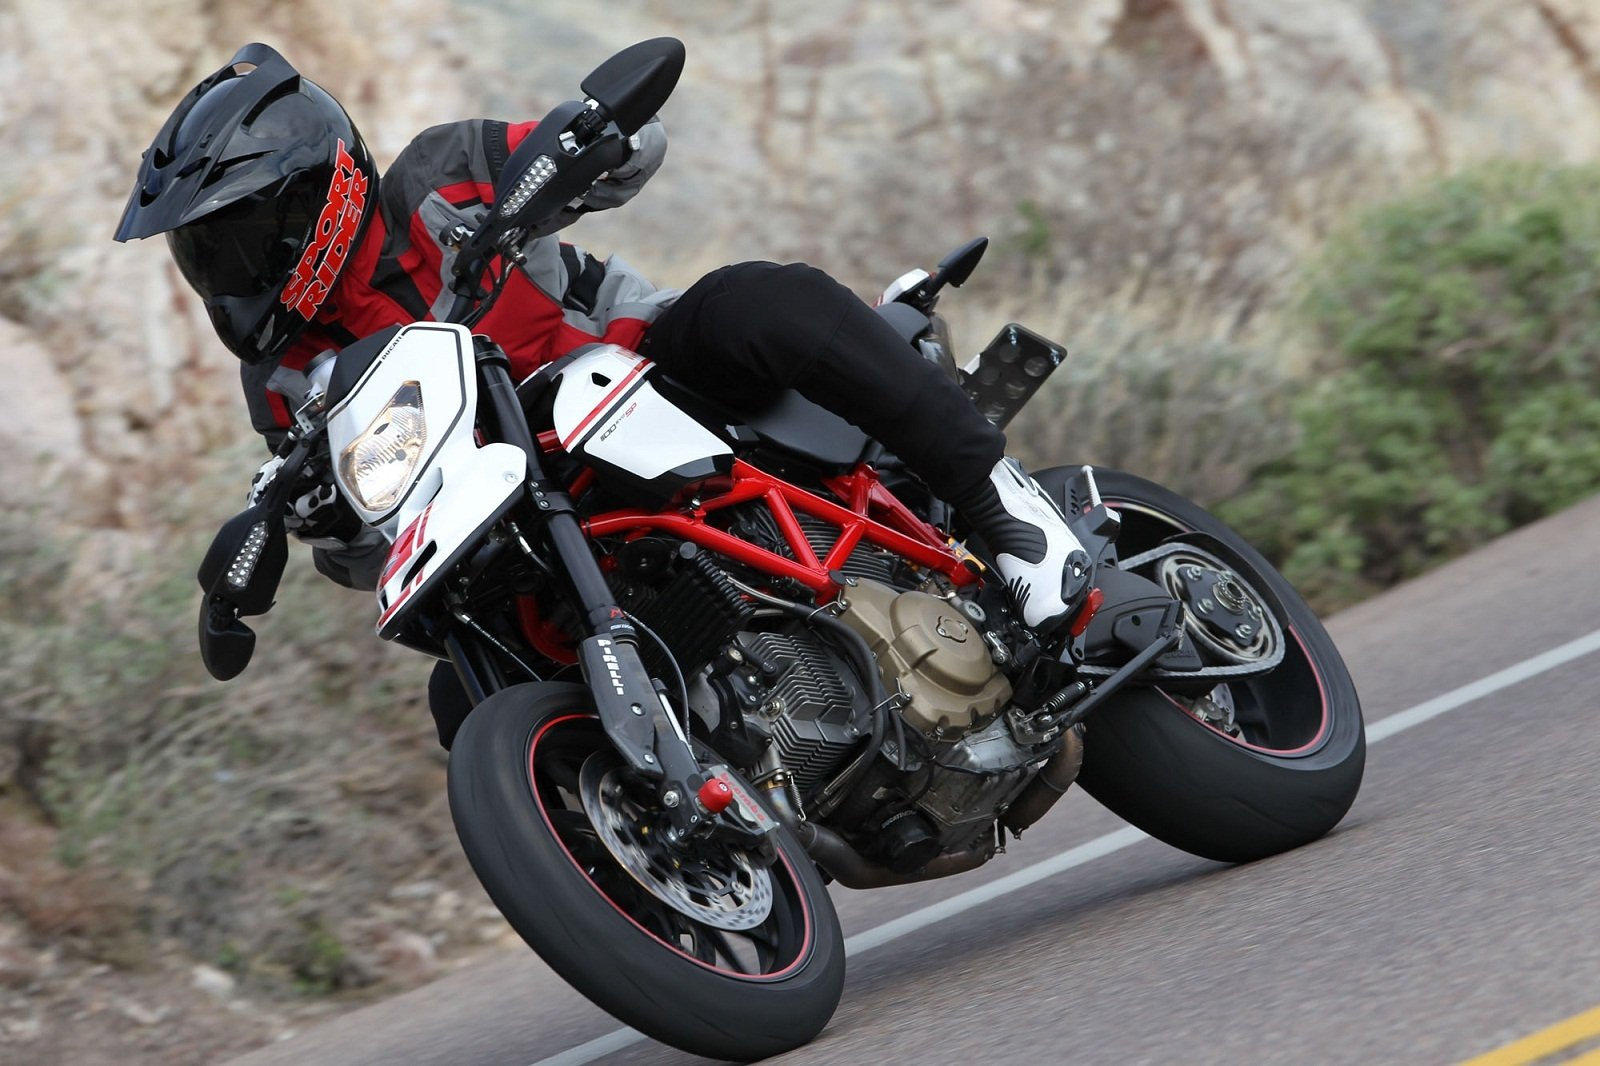 2012 ducati hypermotard 1100 evo sp picture 439746 motorcycle review top speed. Black Bedroom Furniture Sets. Home Design Ideas